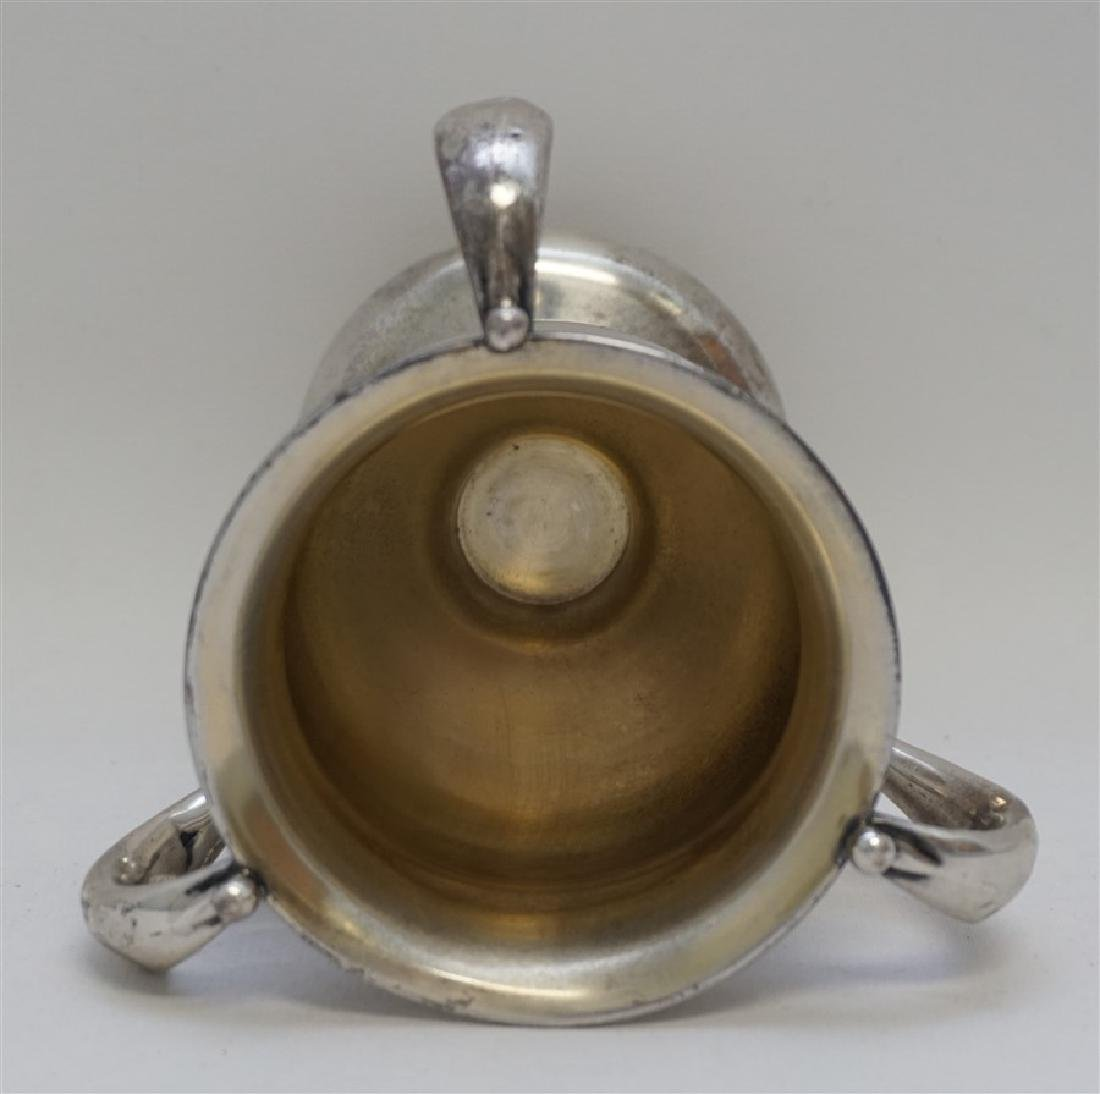 1902 STERLING SILVER LOVING CUP TROPHY - 9